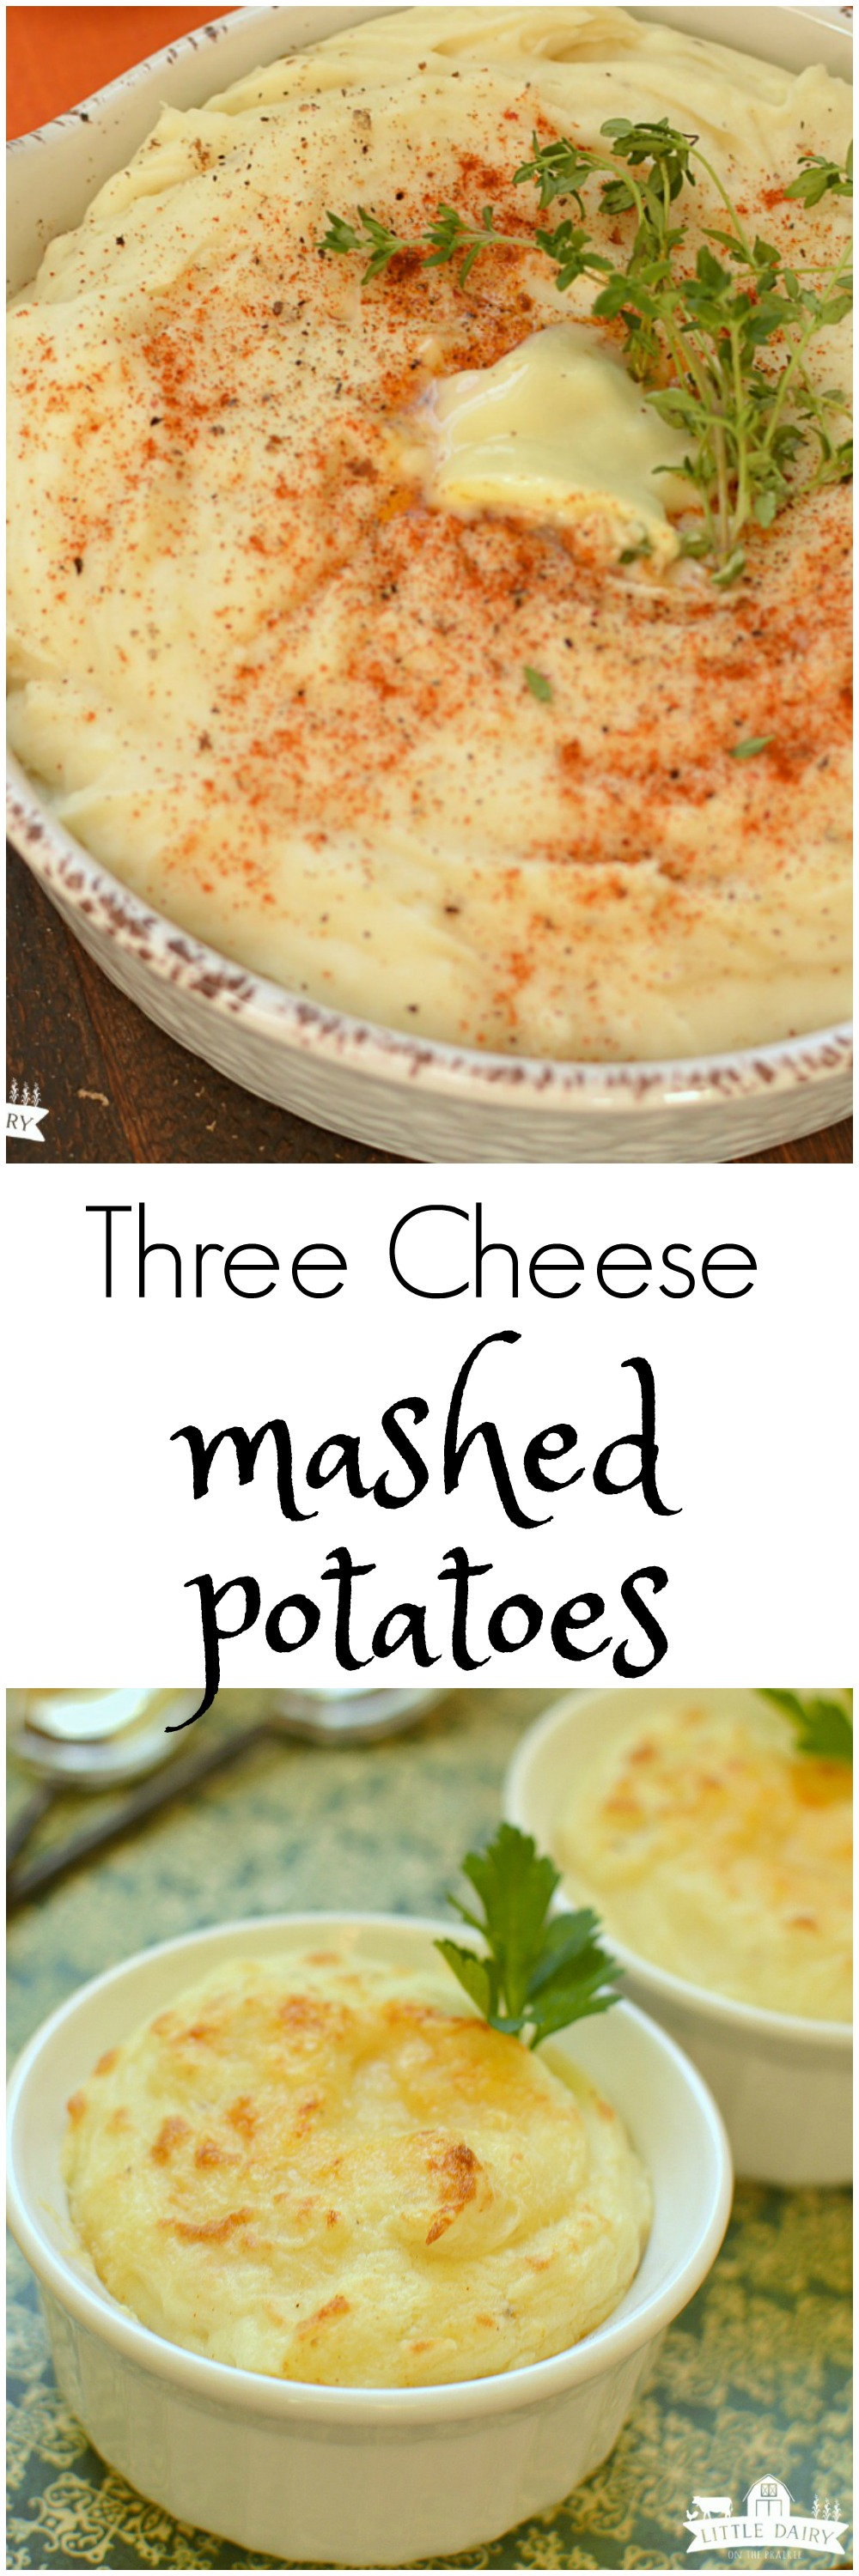 three-cheese-mashed-potatoes-are-creamier-cheesier-and-more-decadent ...